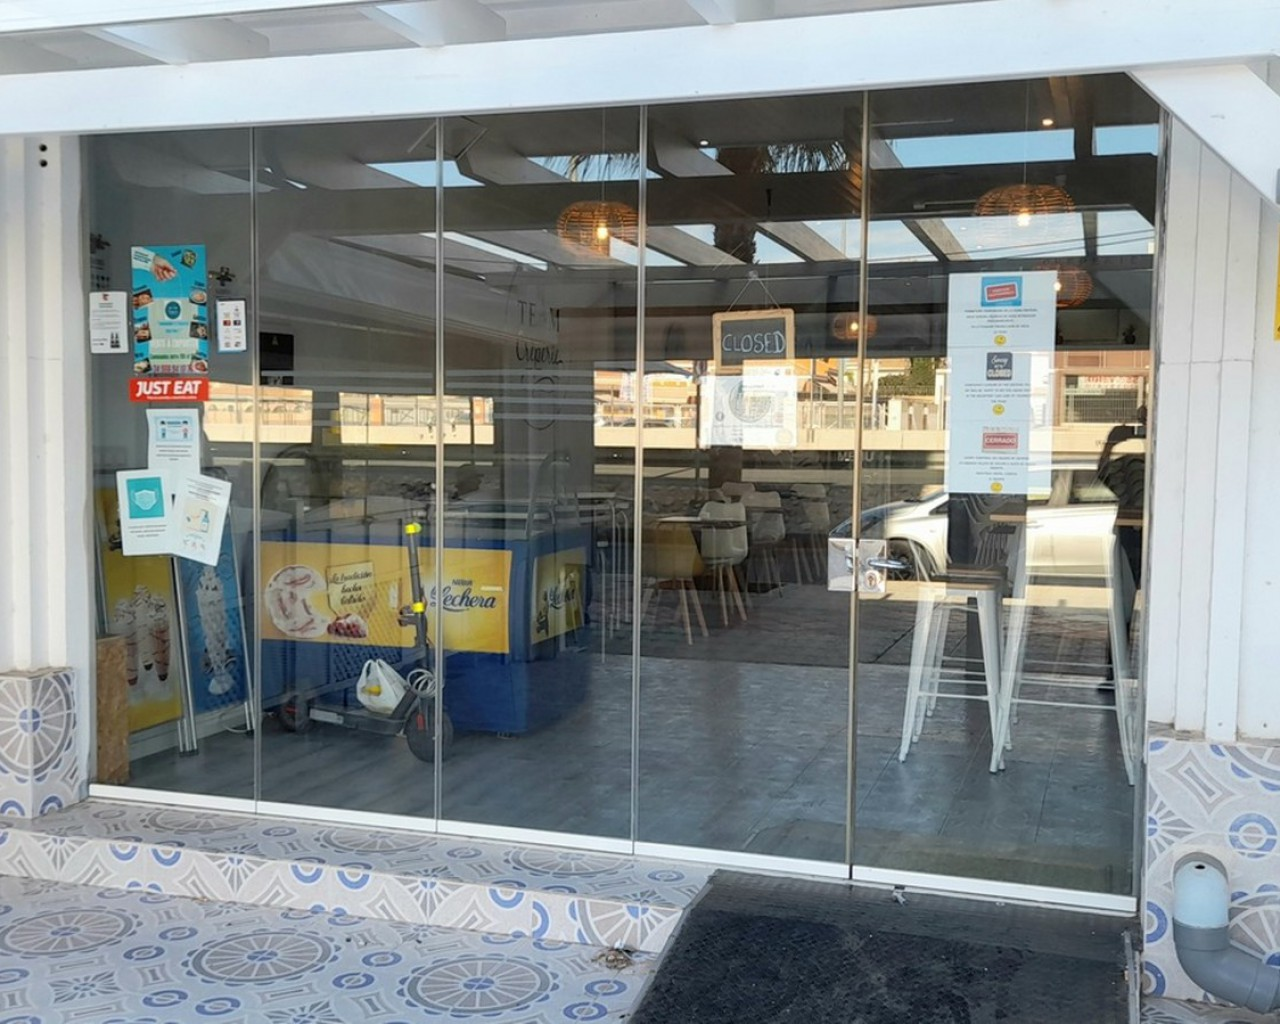 Sale - commercial - Cabo Roig